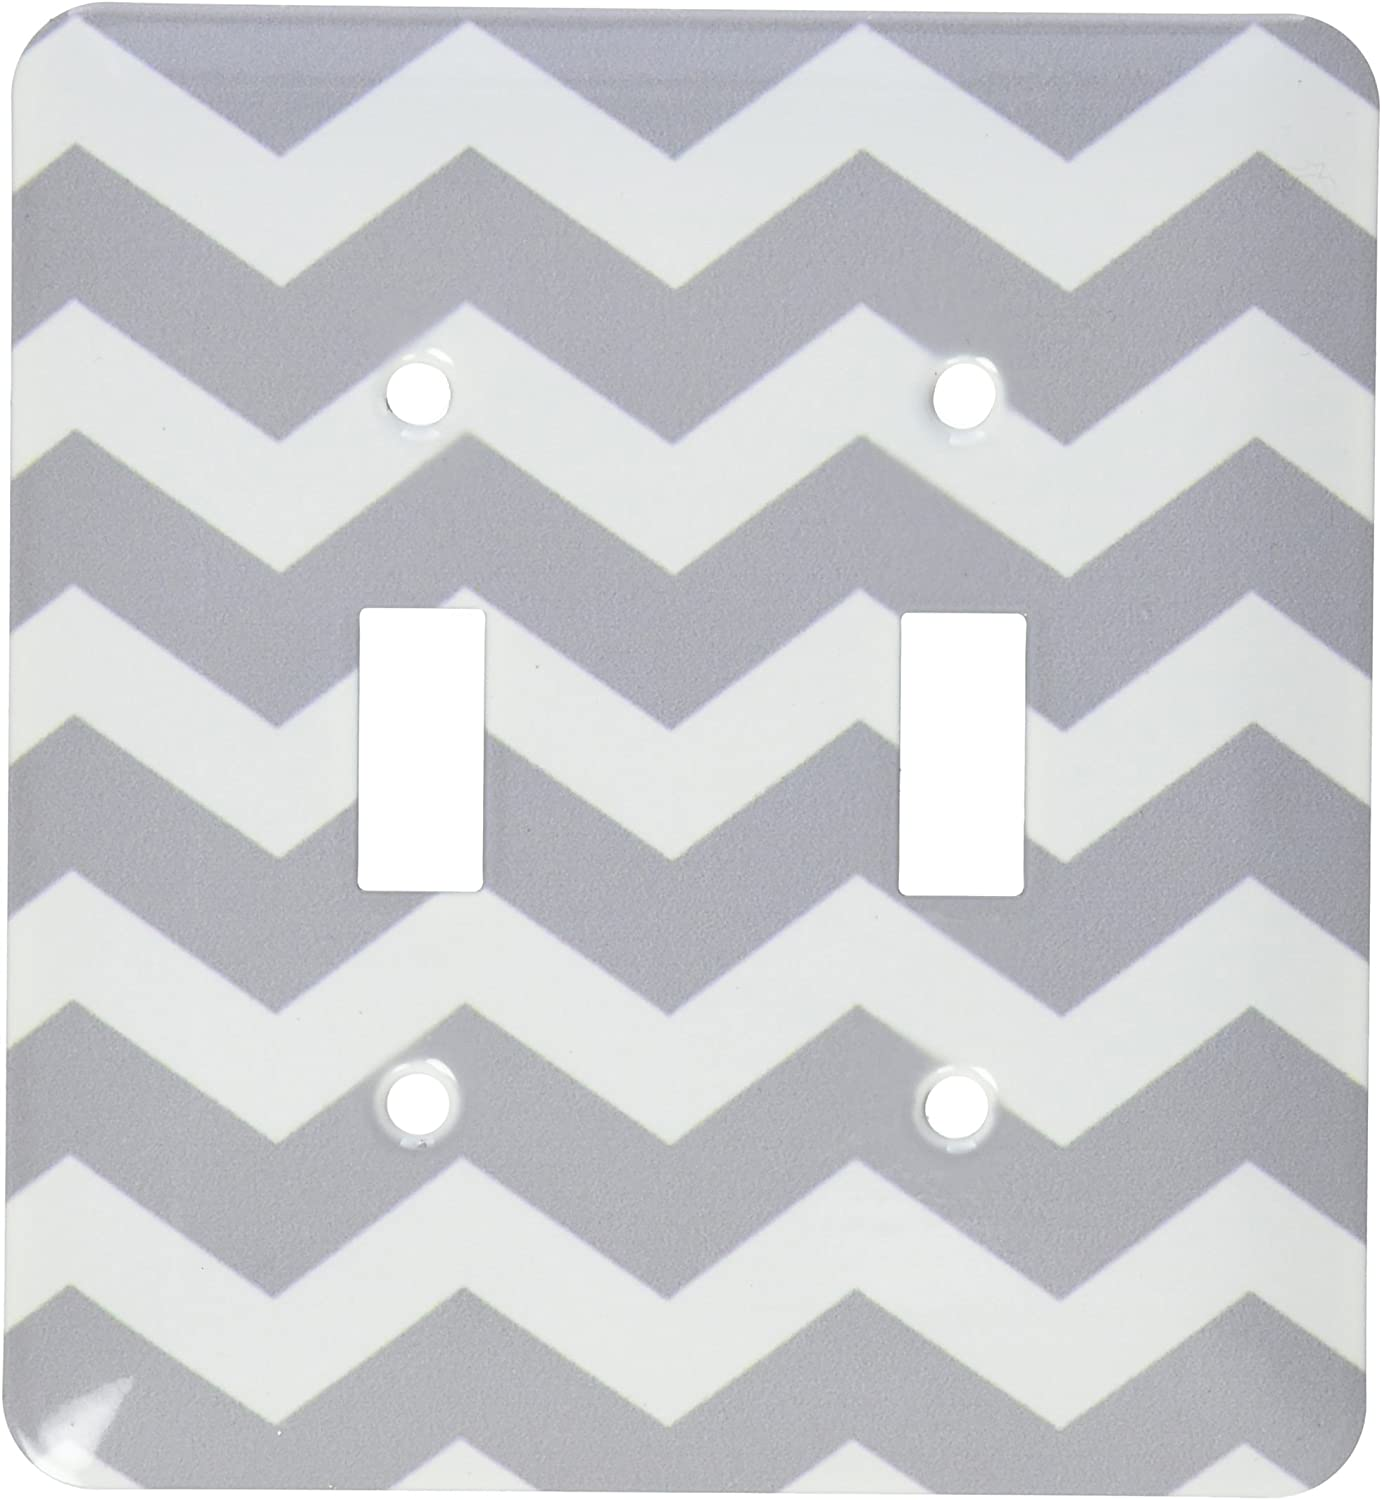 3dRose lsp/_179676/_6 Charcoal Grey and White Zig Zag Chevron Dark Gray Zigzag Pattern Light Switch Cover